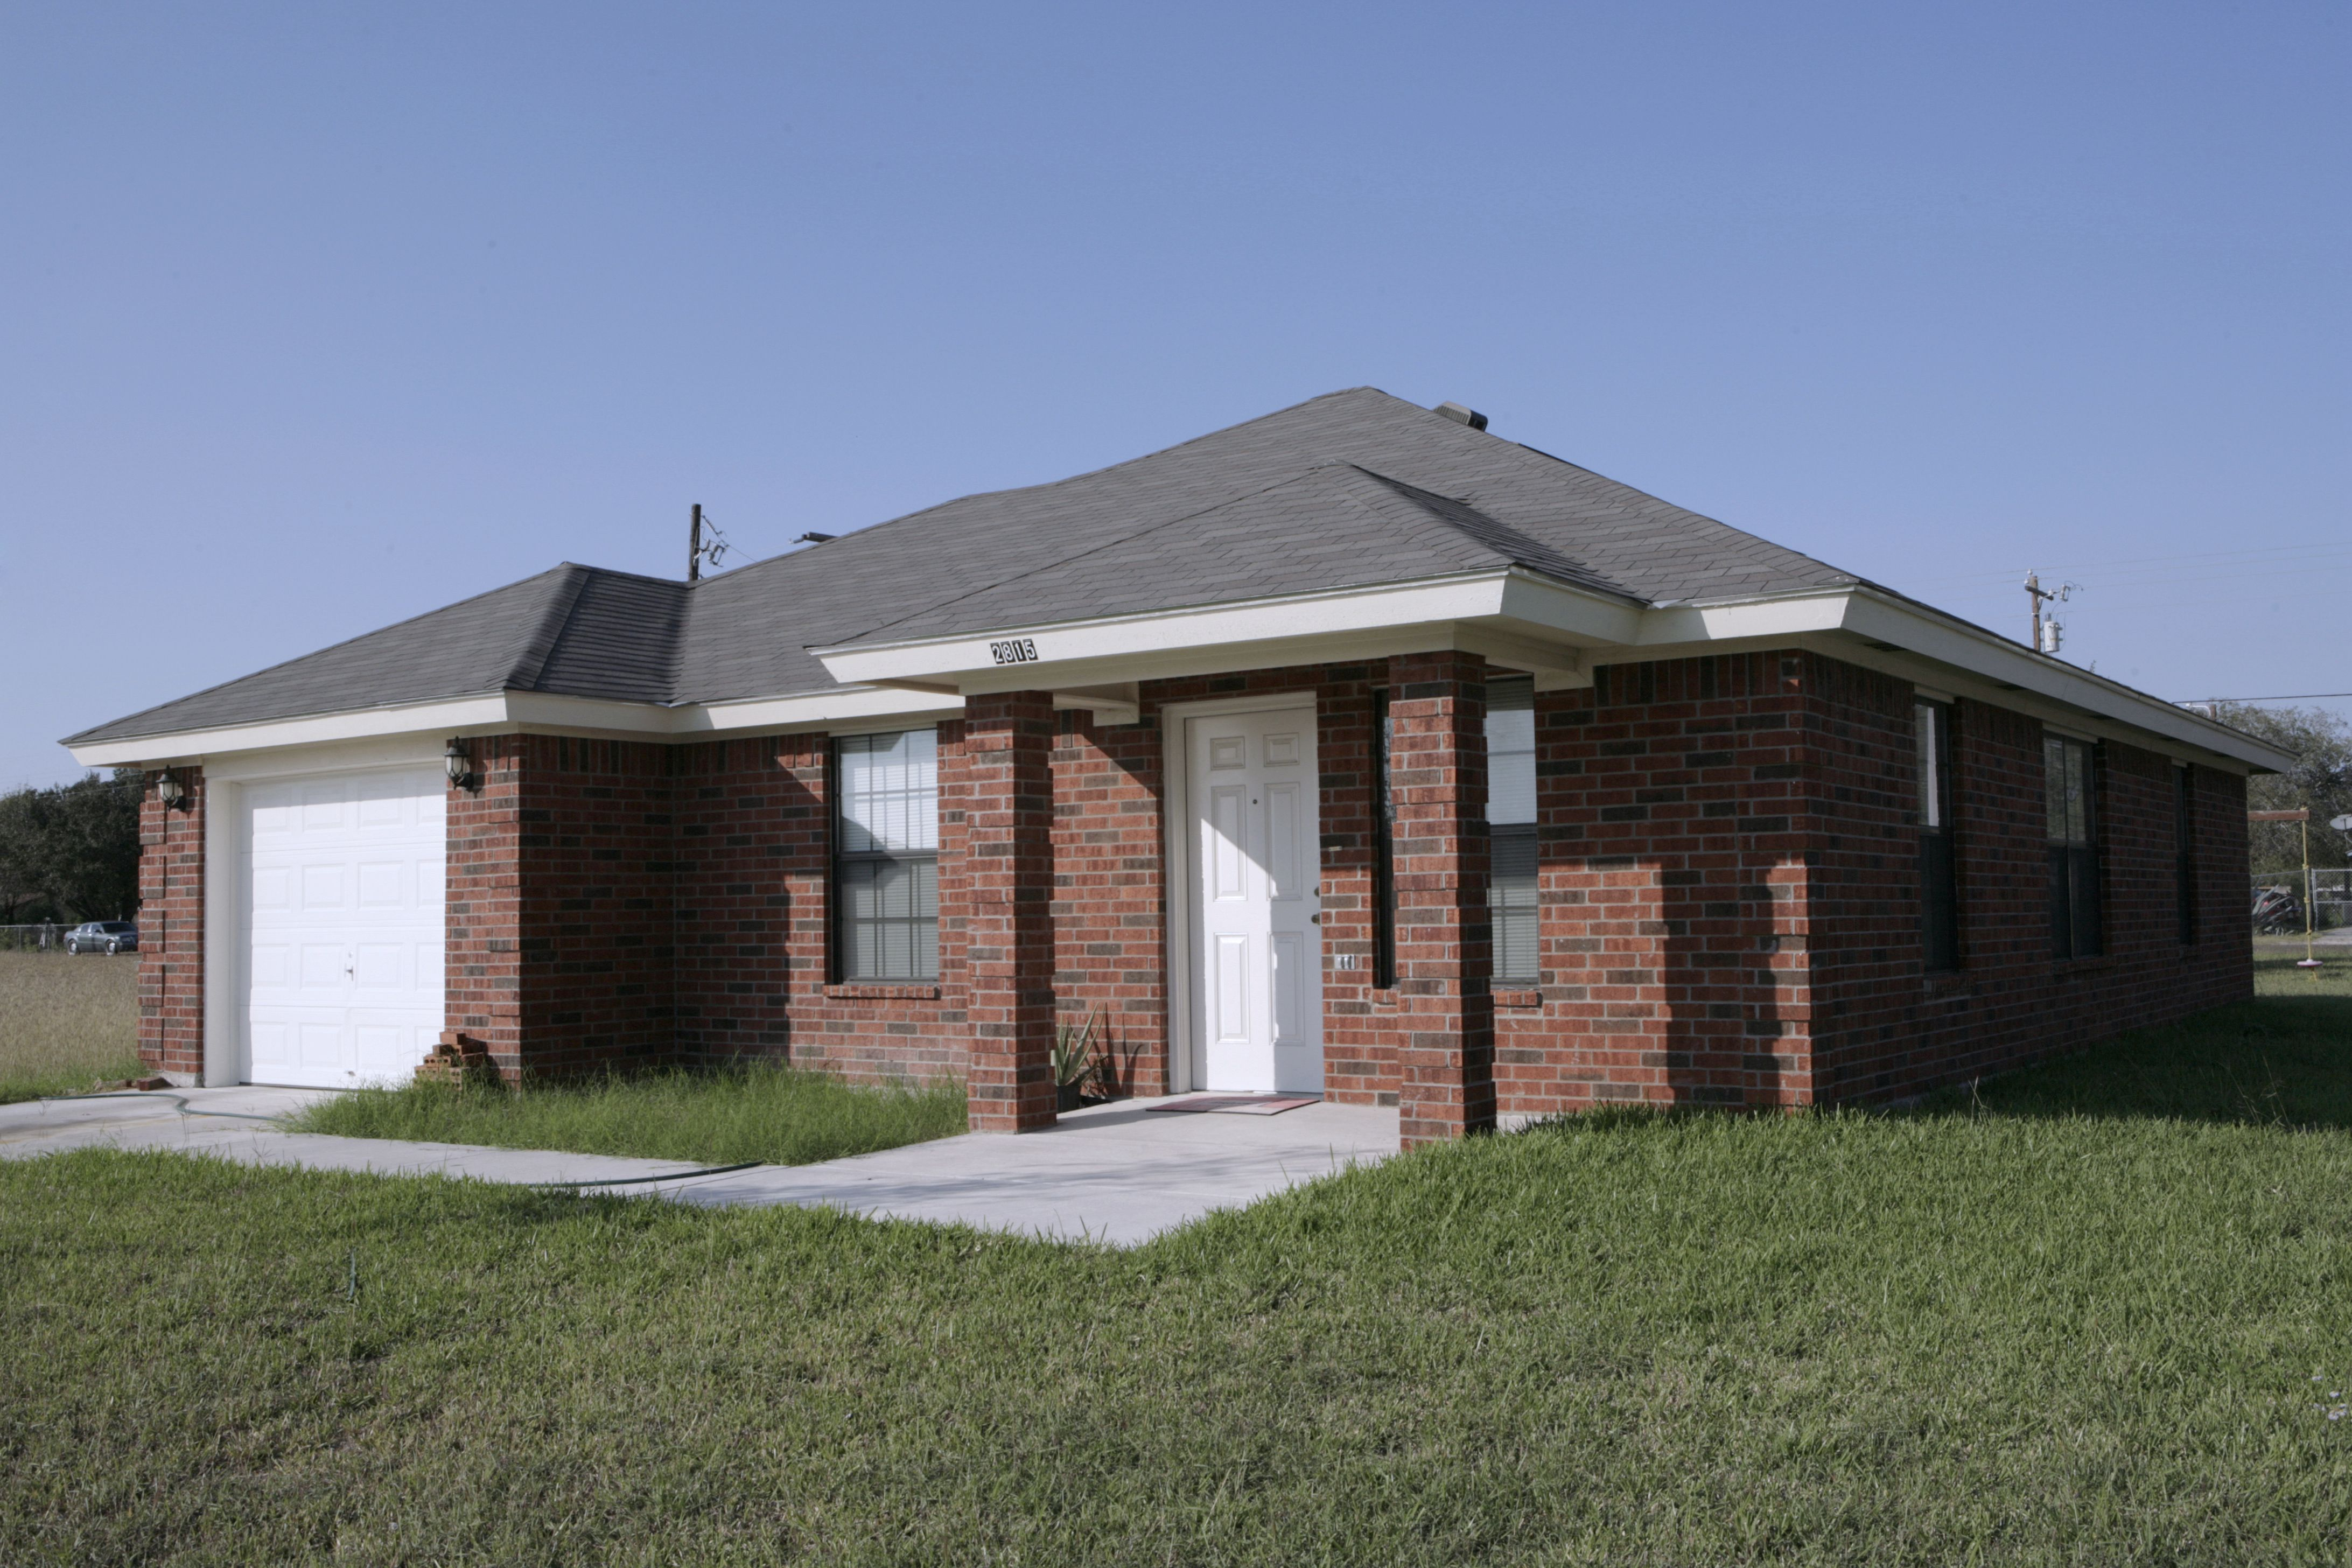 Example Of A Home Built At Affordable Homes Of South Texas, Inc.